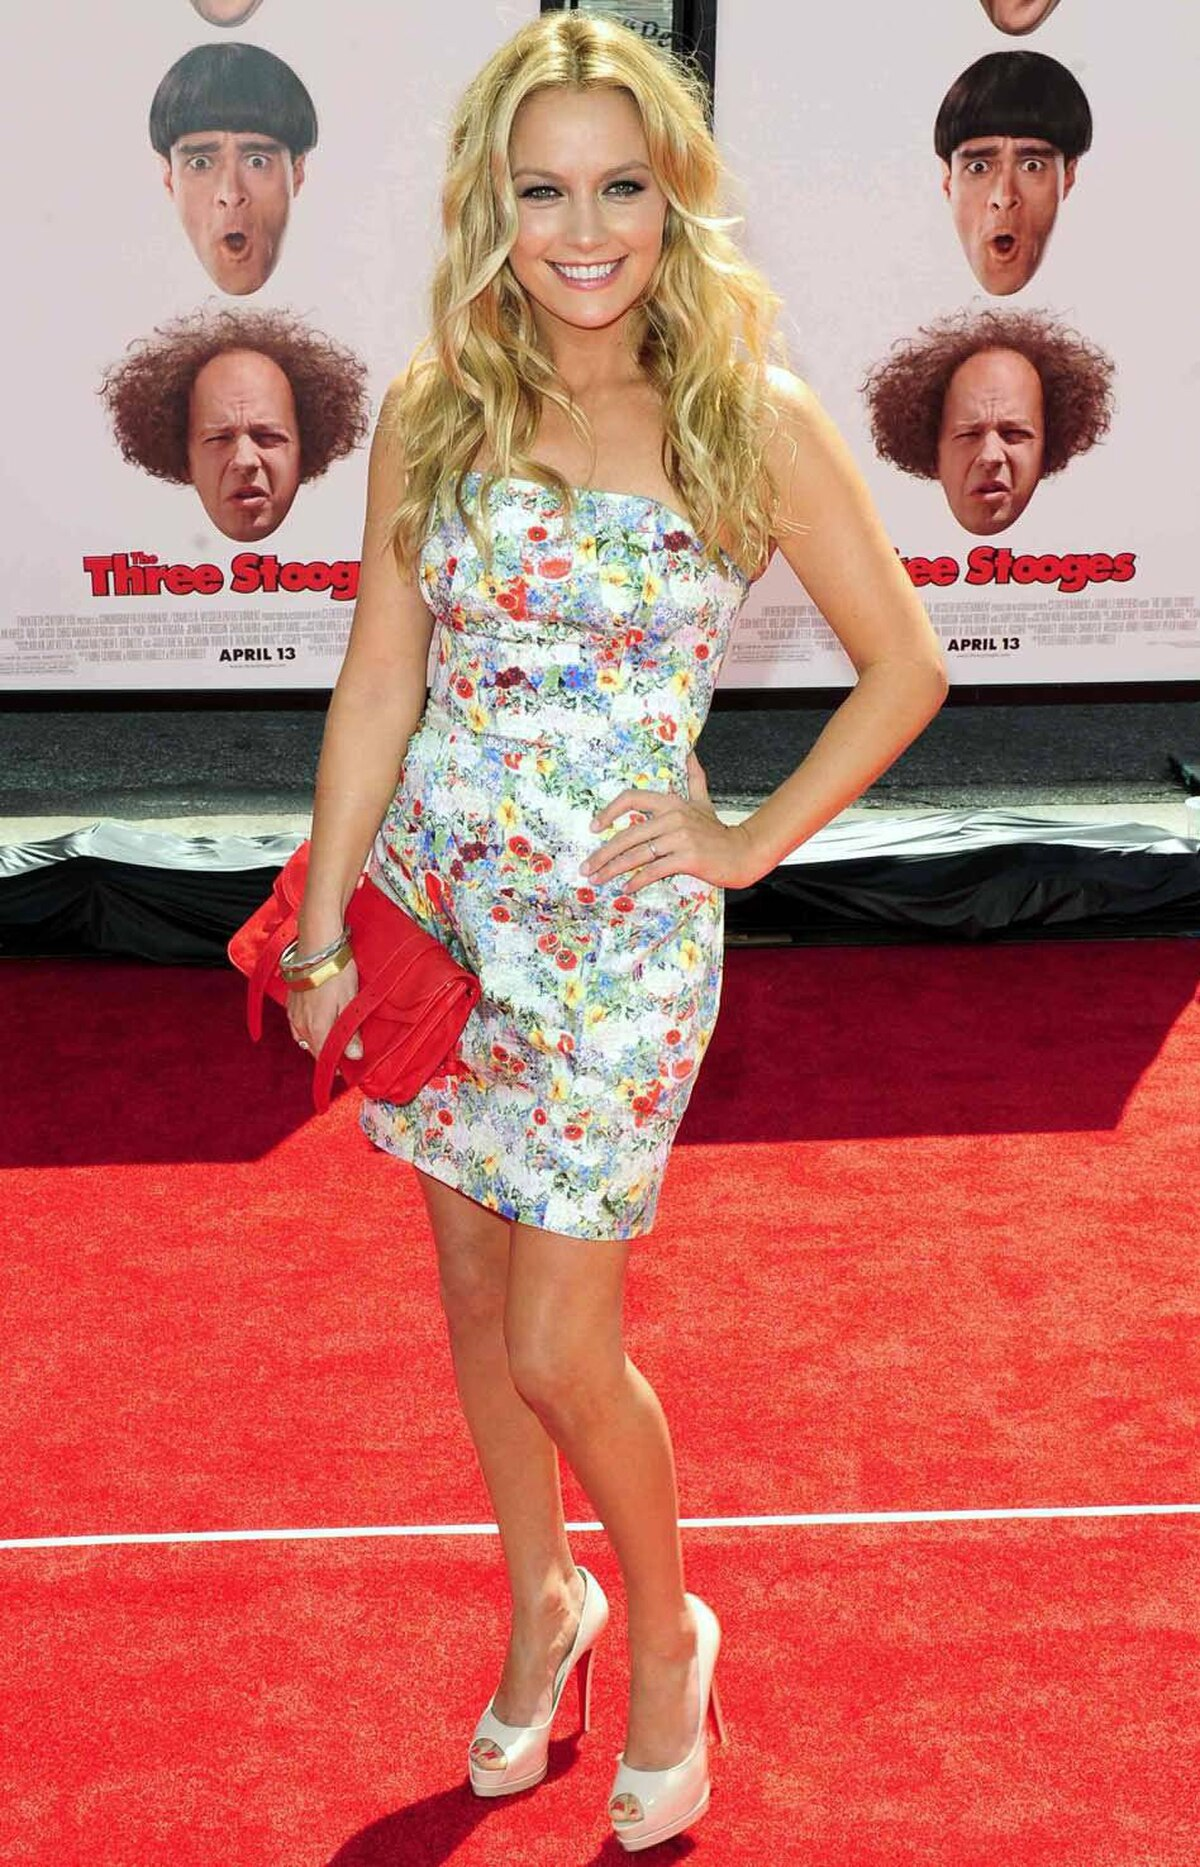 Becki Newton, too, is an actress on a red carpet.